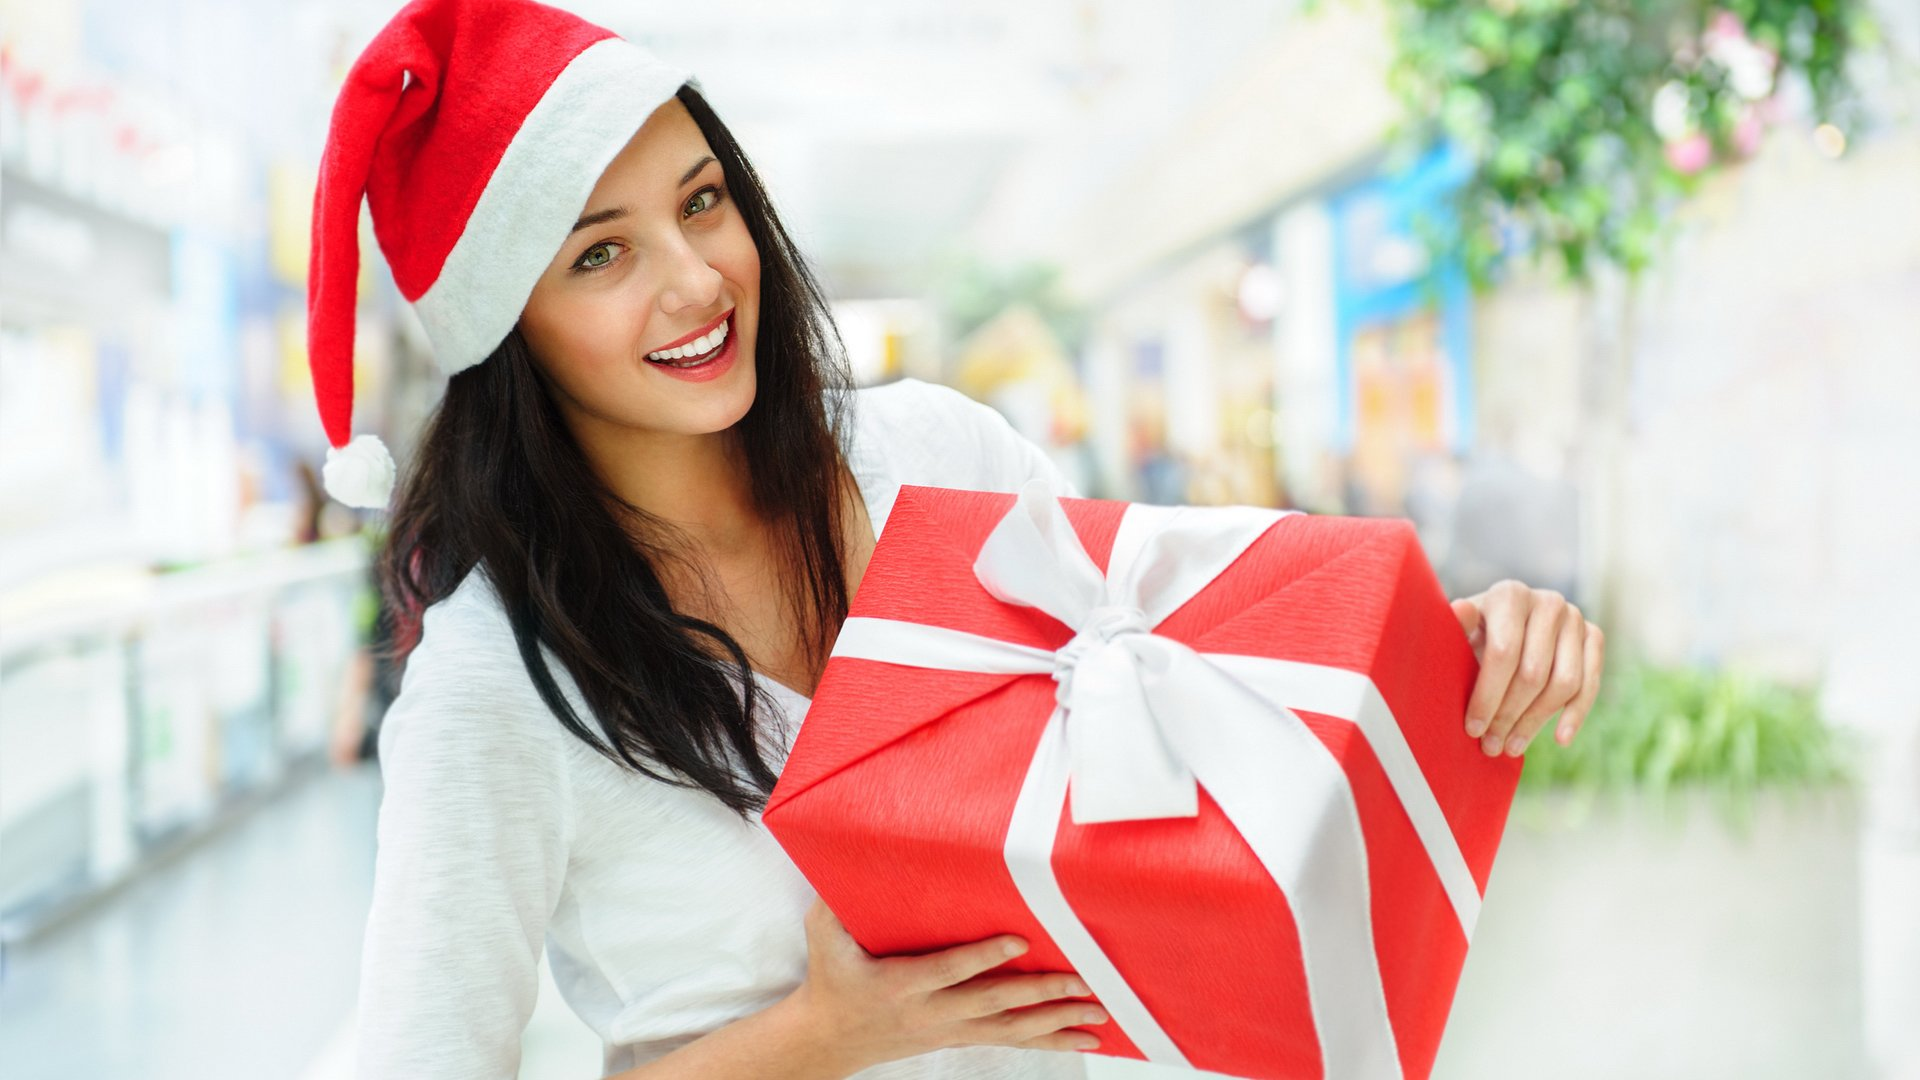 Beautiful Girl with Christmas Gift HD Wallpaper 1080p